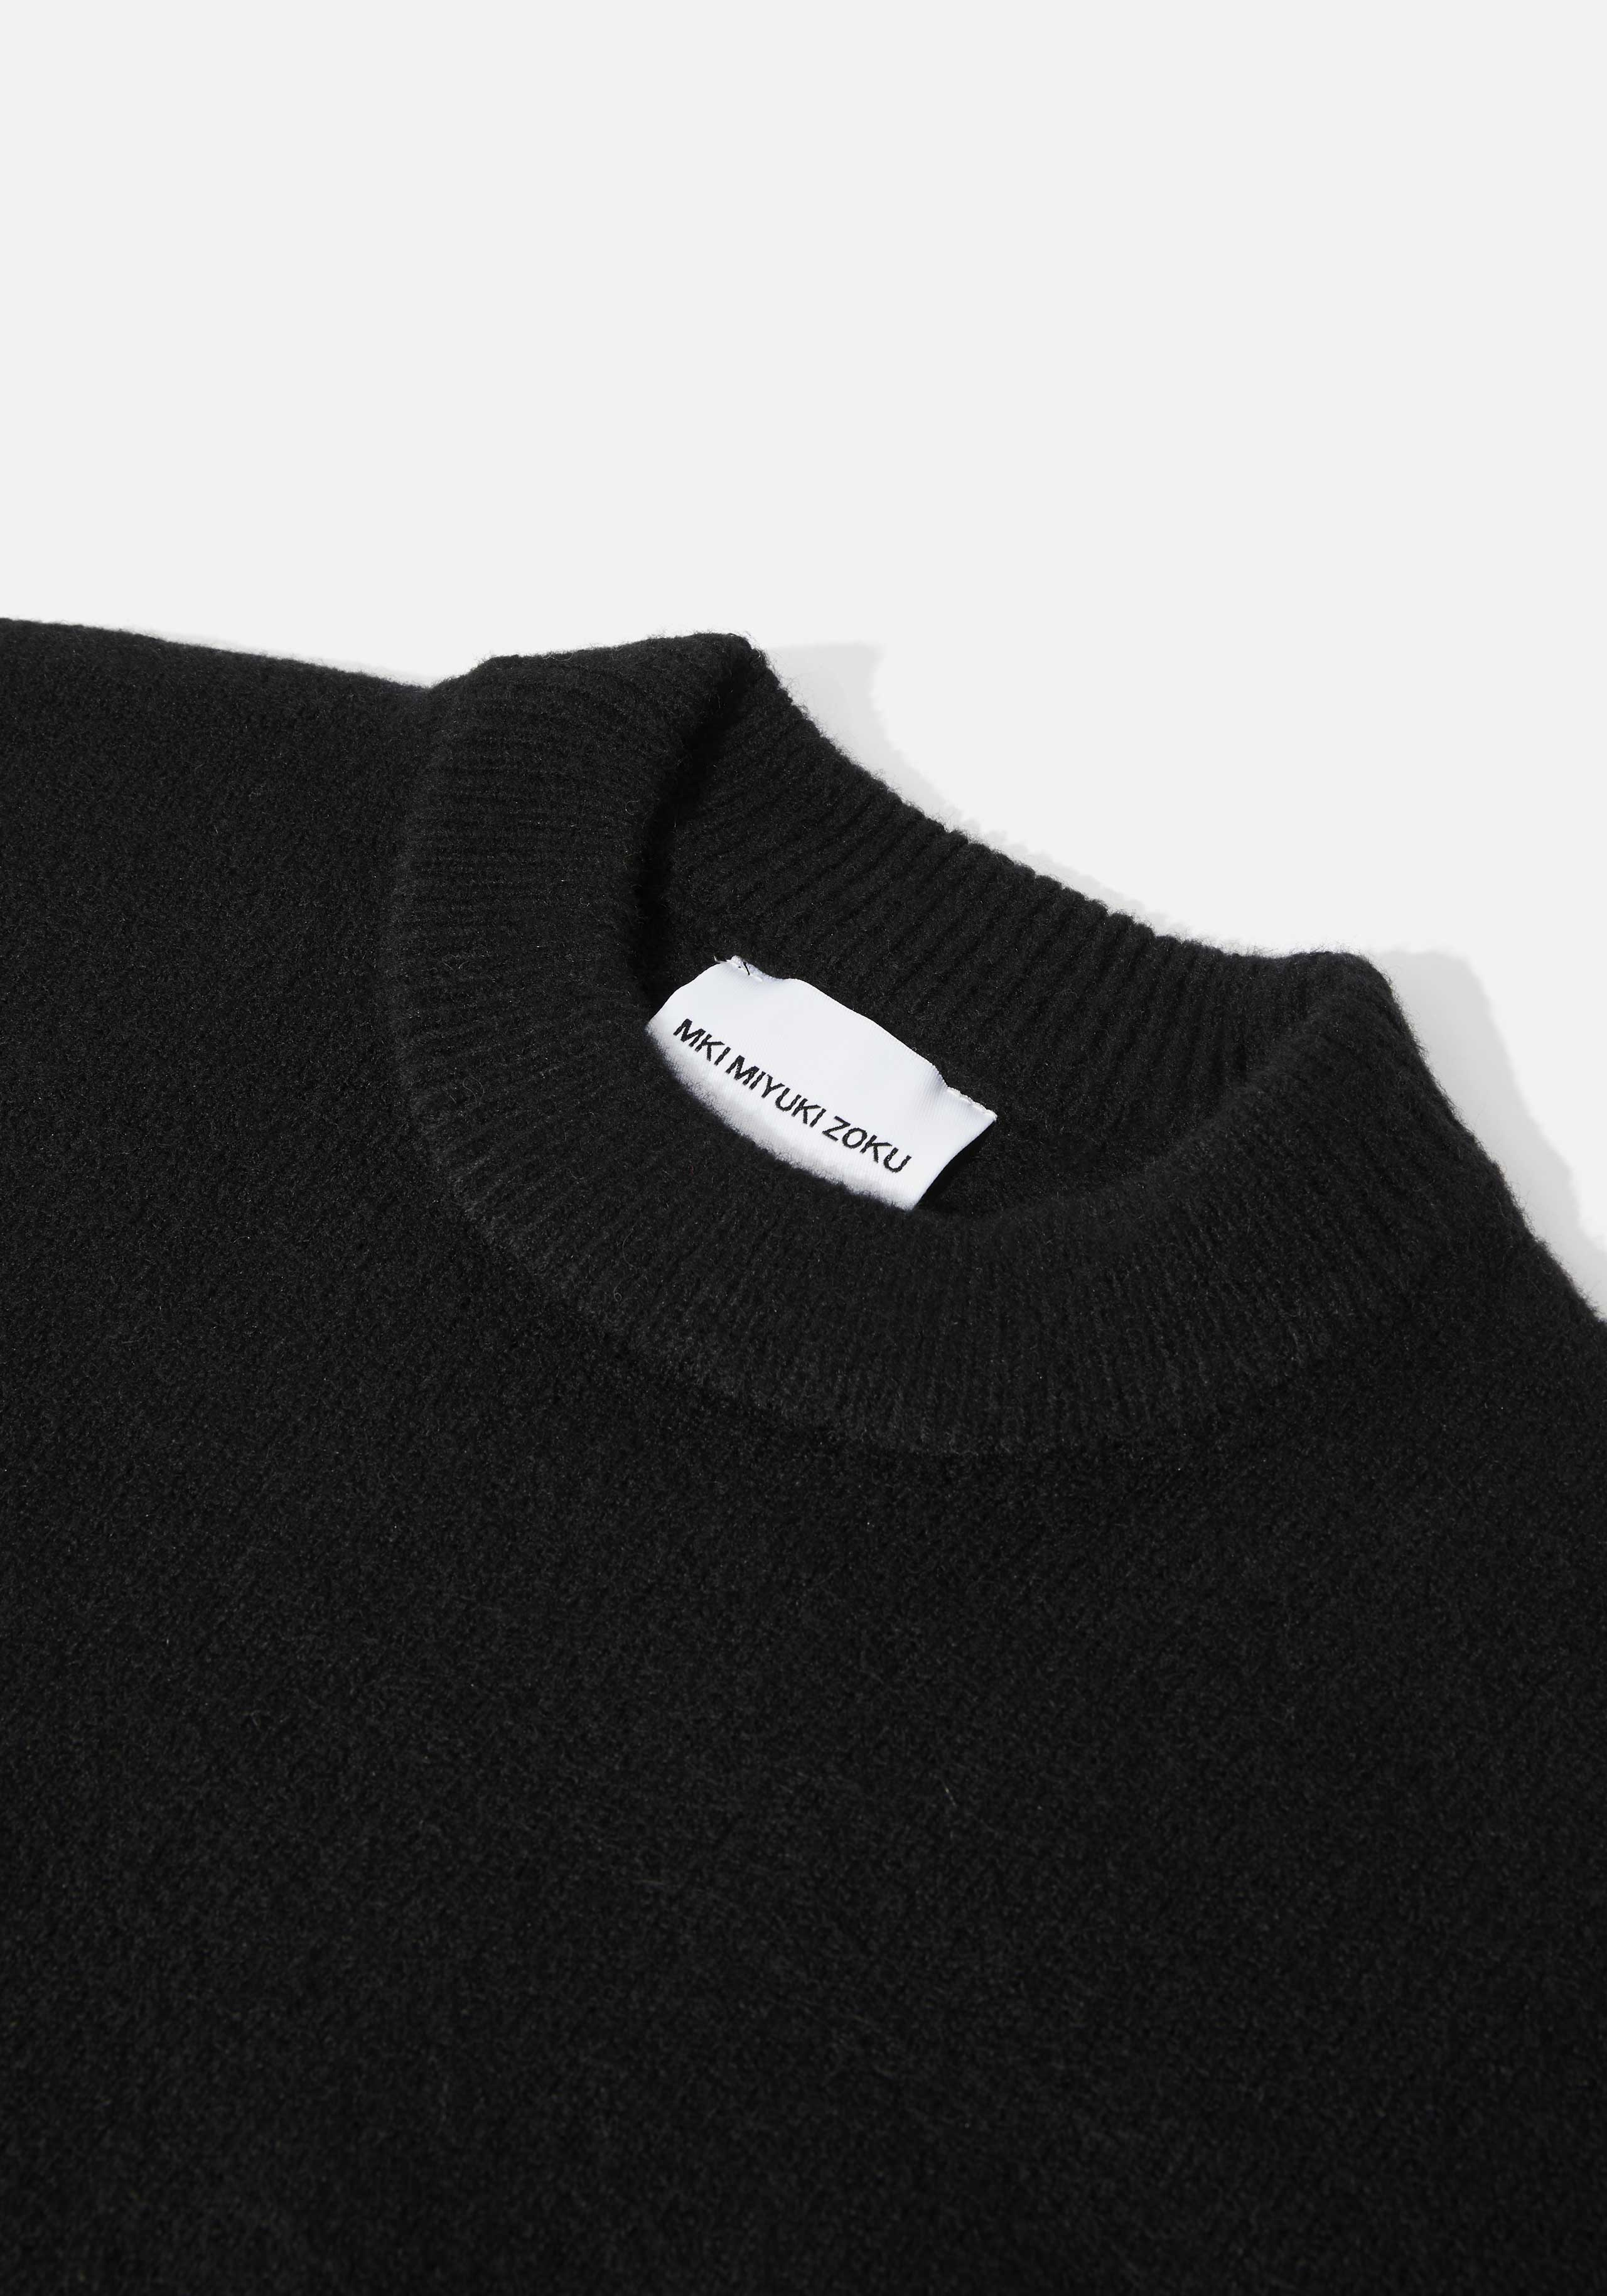 mki heavy knit crewneck 3